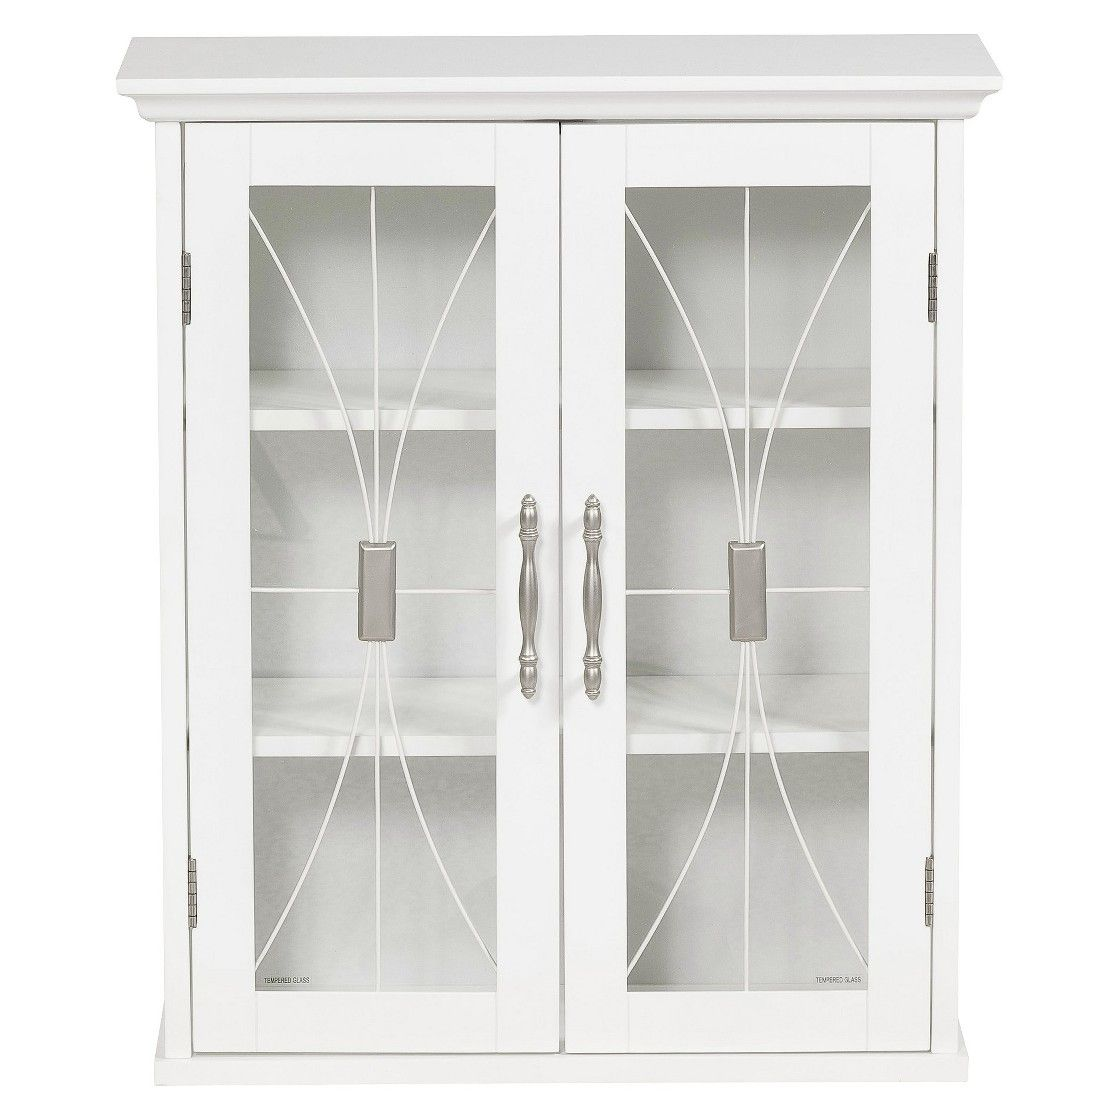 Symphony Wall Cabinet White - Elegant Home Fashions  Wall cabinet